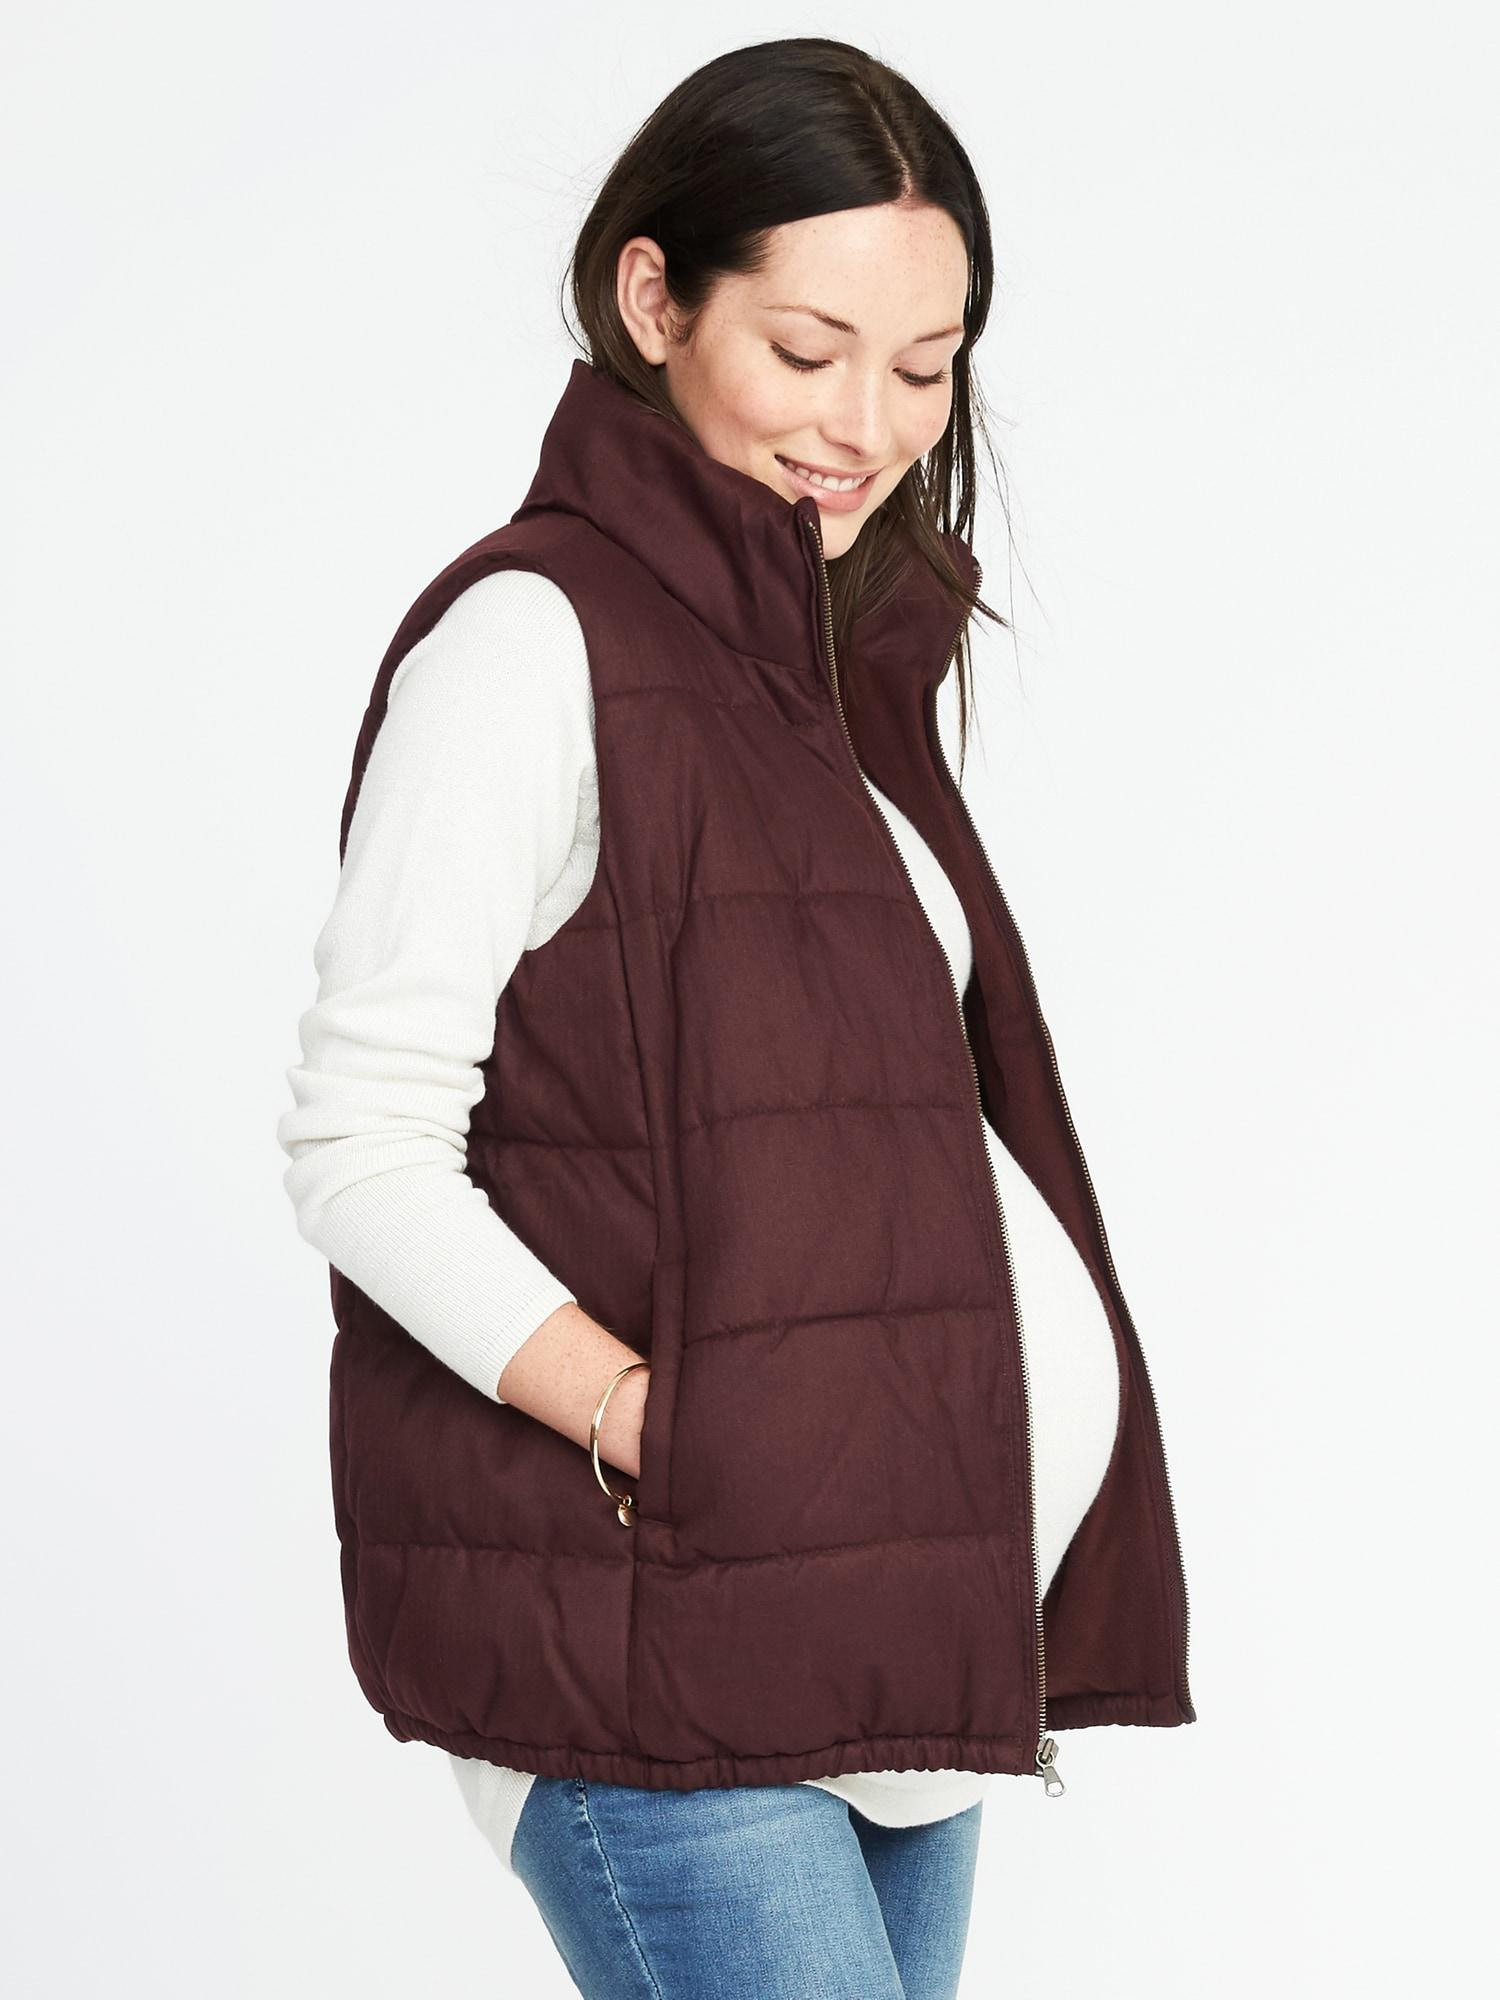 465a2b46583 Lyst - Old Navy Maternity Frost-free Vest